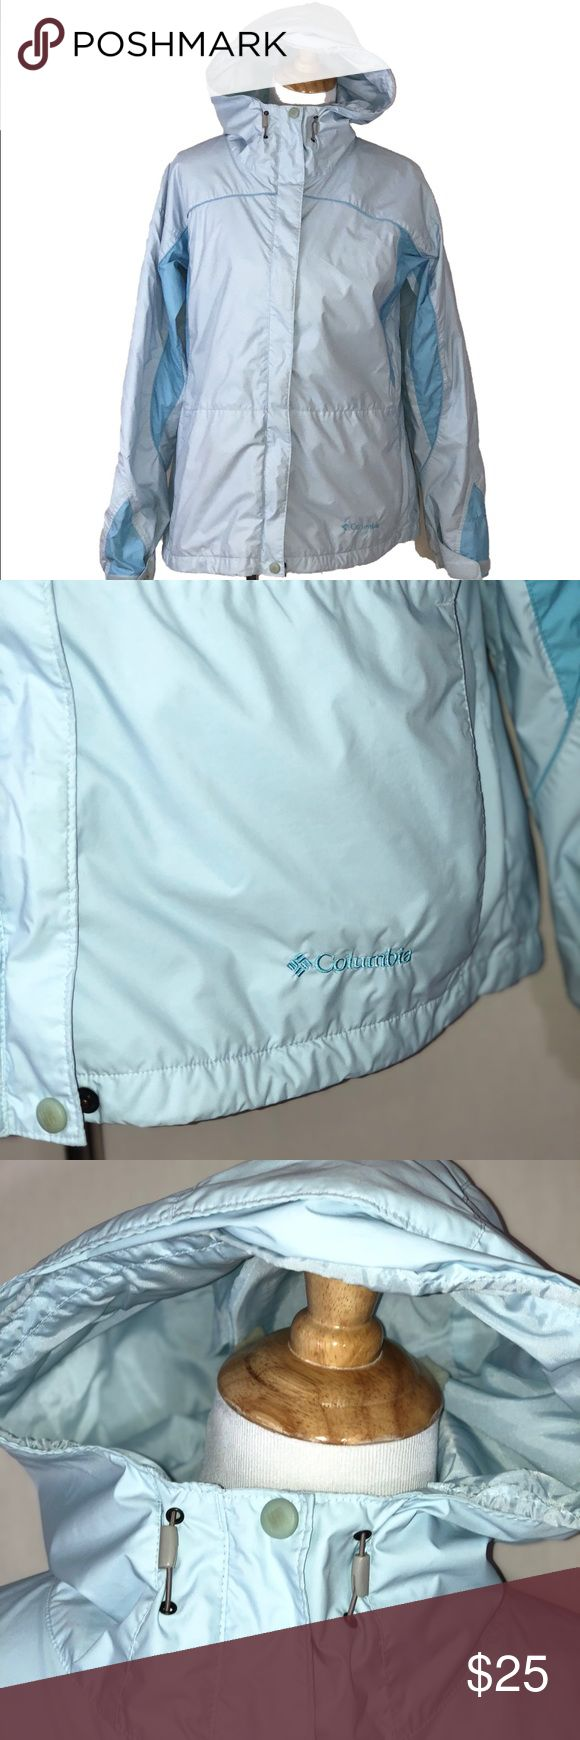 "Columbia Sportswear Storm Dry Jacket Columbia Sportswear Womens Jacket  Size Large  Storm Dry   Waterproof  Breathable Fabric   Mesh Lining   Packable   Spot For Headphones  Zip Fleece Lined Pockets on Outside  Zip Front With Velcro Closure   Gently Worn- Has a Small spot on Front, Still In Great Condition   Pit to Pit: 21 1/2""  Length:25""  (B1) Columbia Jackets & Coats Utility Jackets"